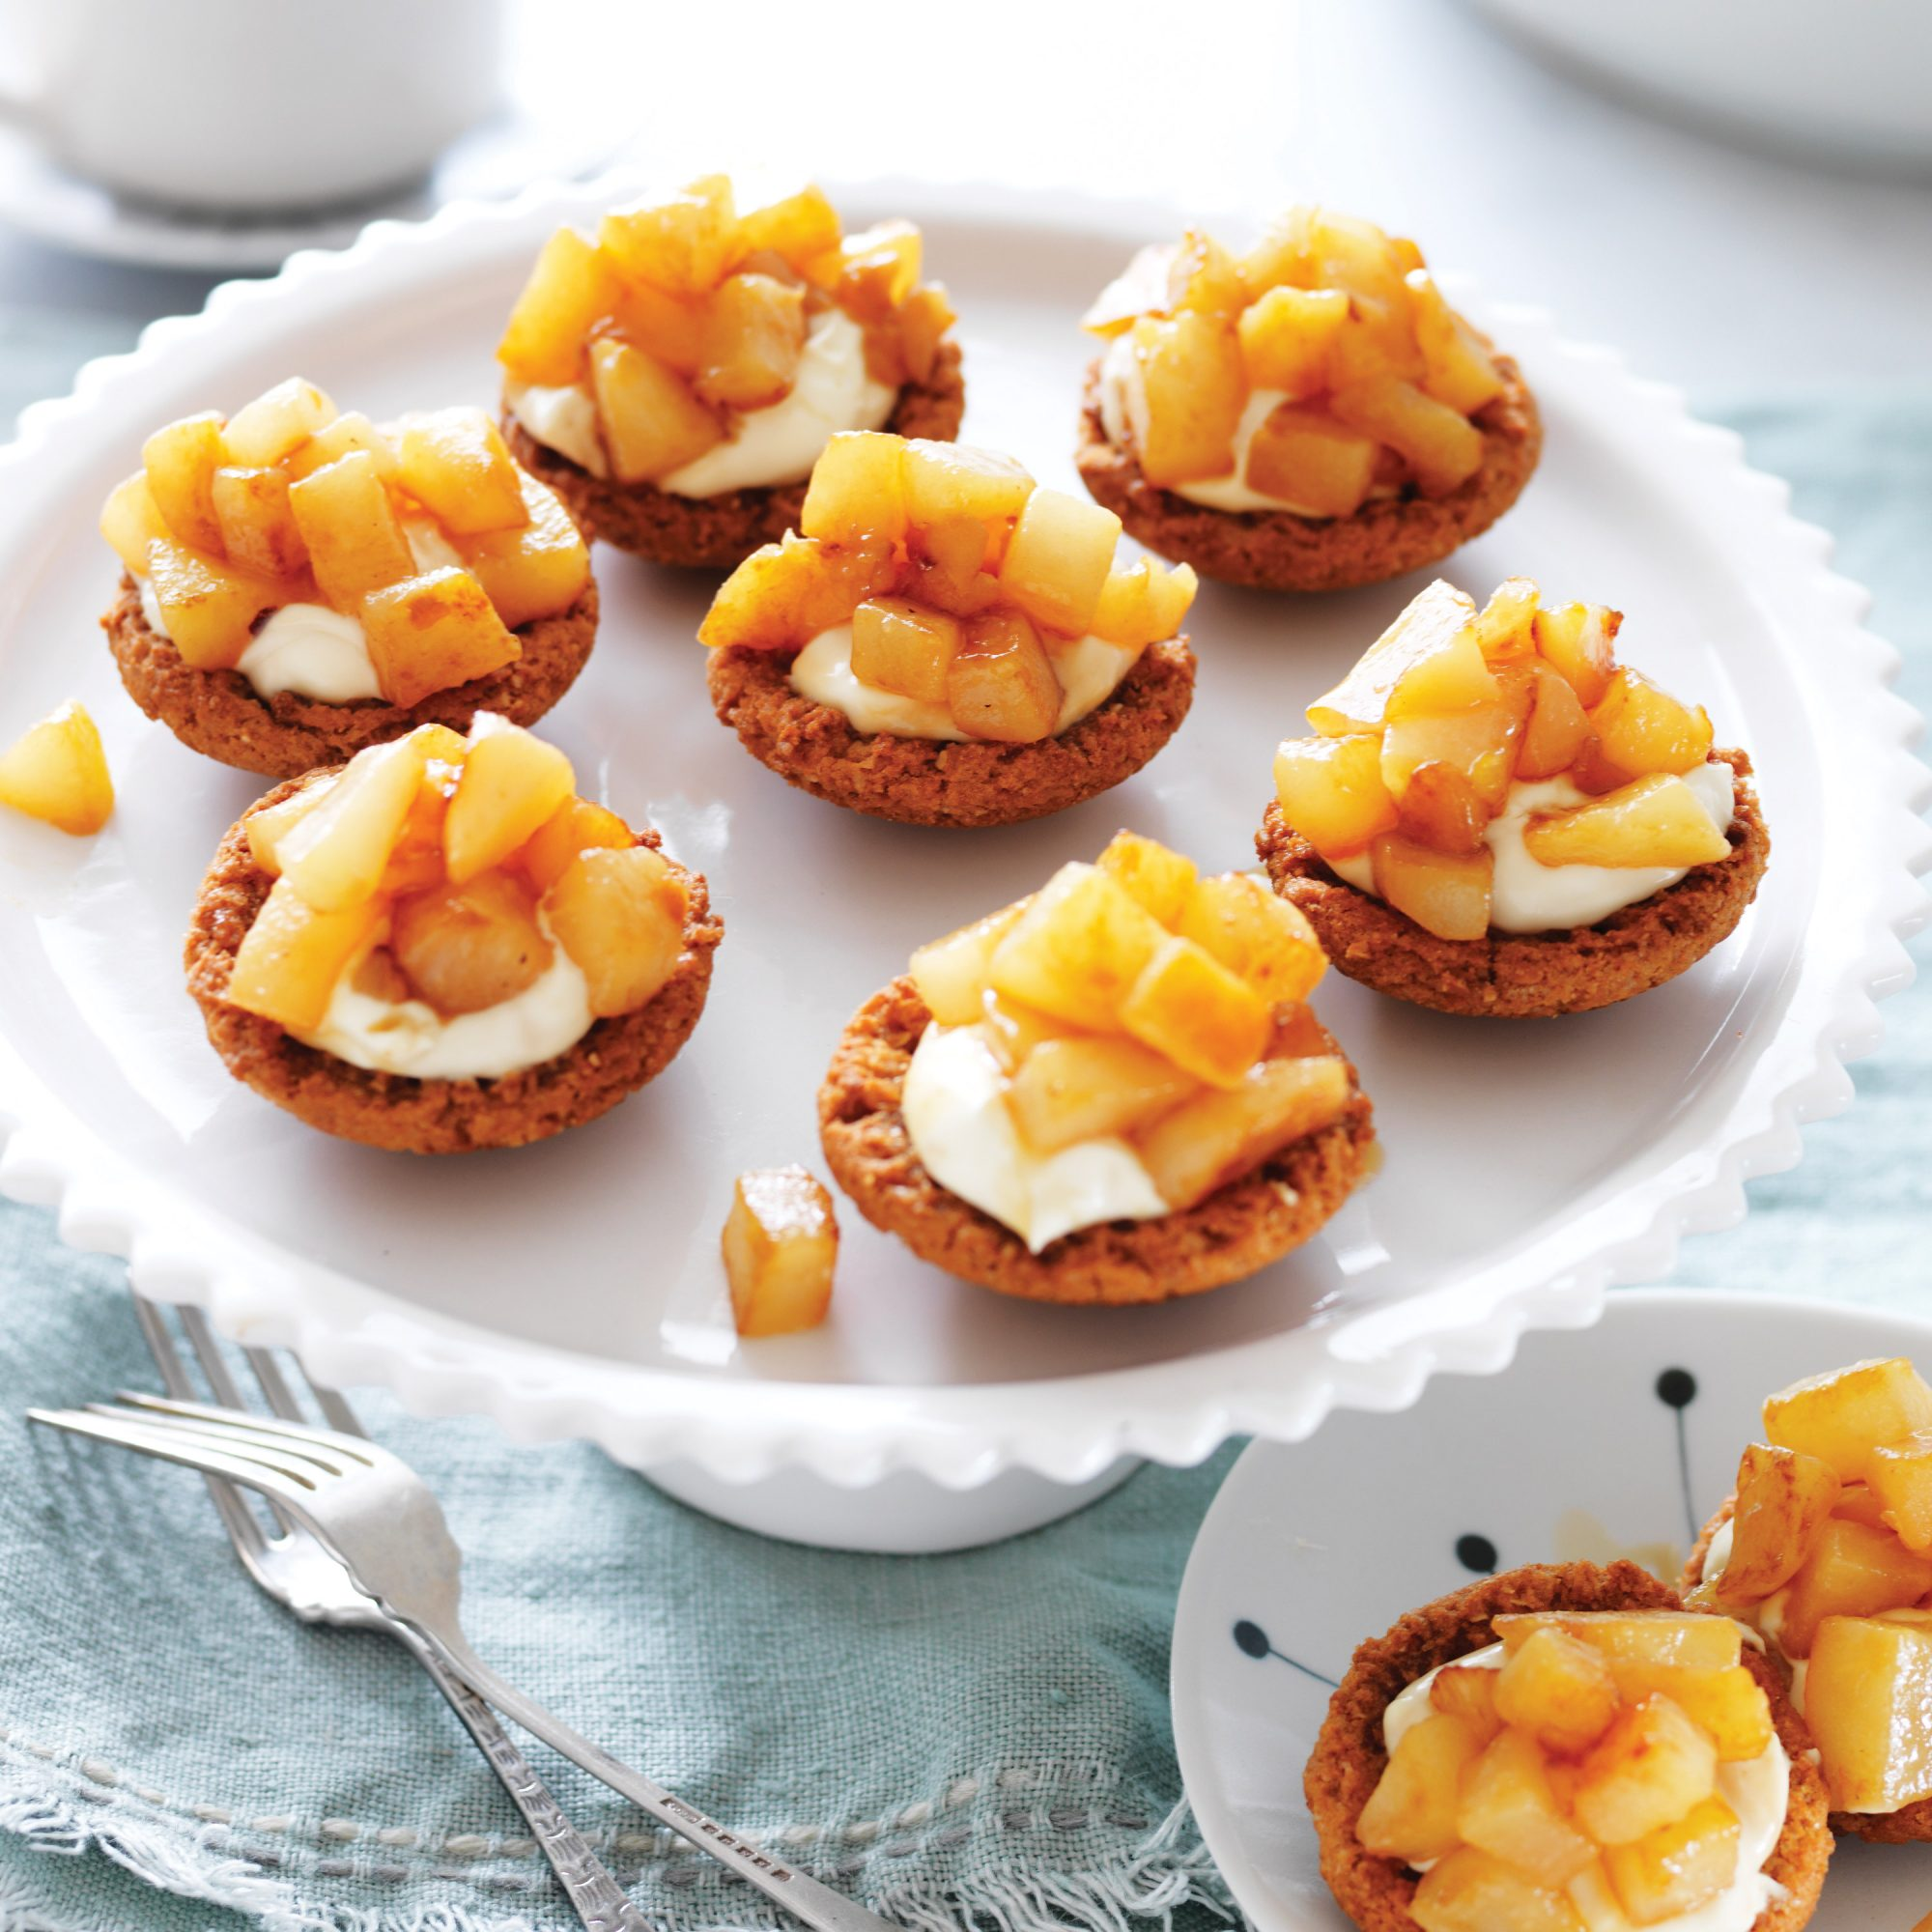 Pears and sour cream in butternut cookies cases